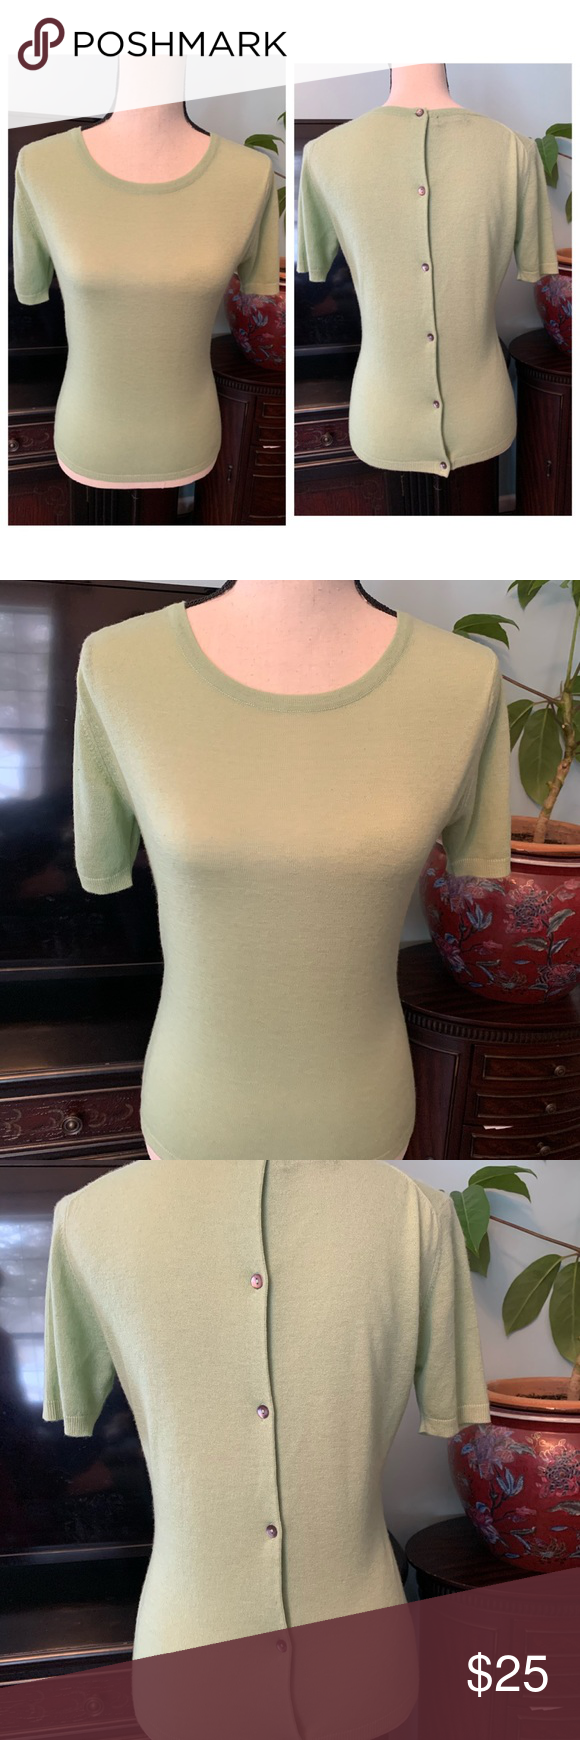 Cashmere Sweater Stort Sleeves Green M Prushcashmere Cashmere Sweater Stort Sleeves Green Medium Bottom Back Excellent pre owner condition like new plushcashmere Sweaters...